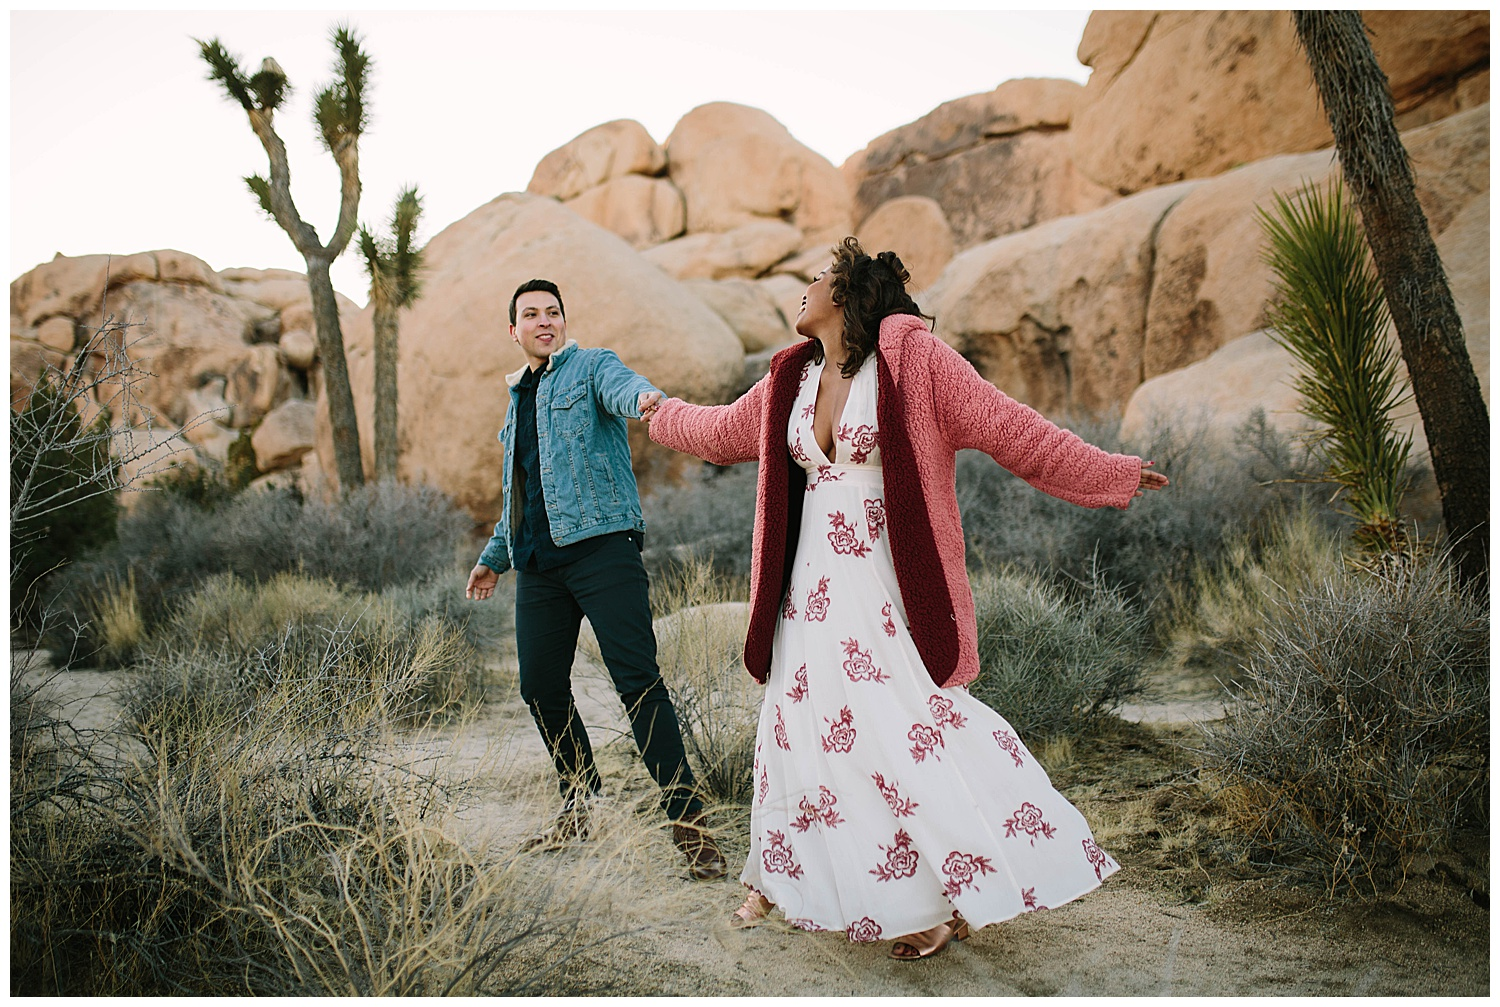 la.lifestyle.photography.session.engaged.malibu.joshuatree.kendralynnephotography-42.jpg